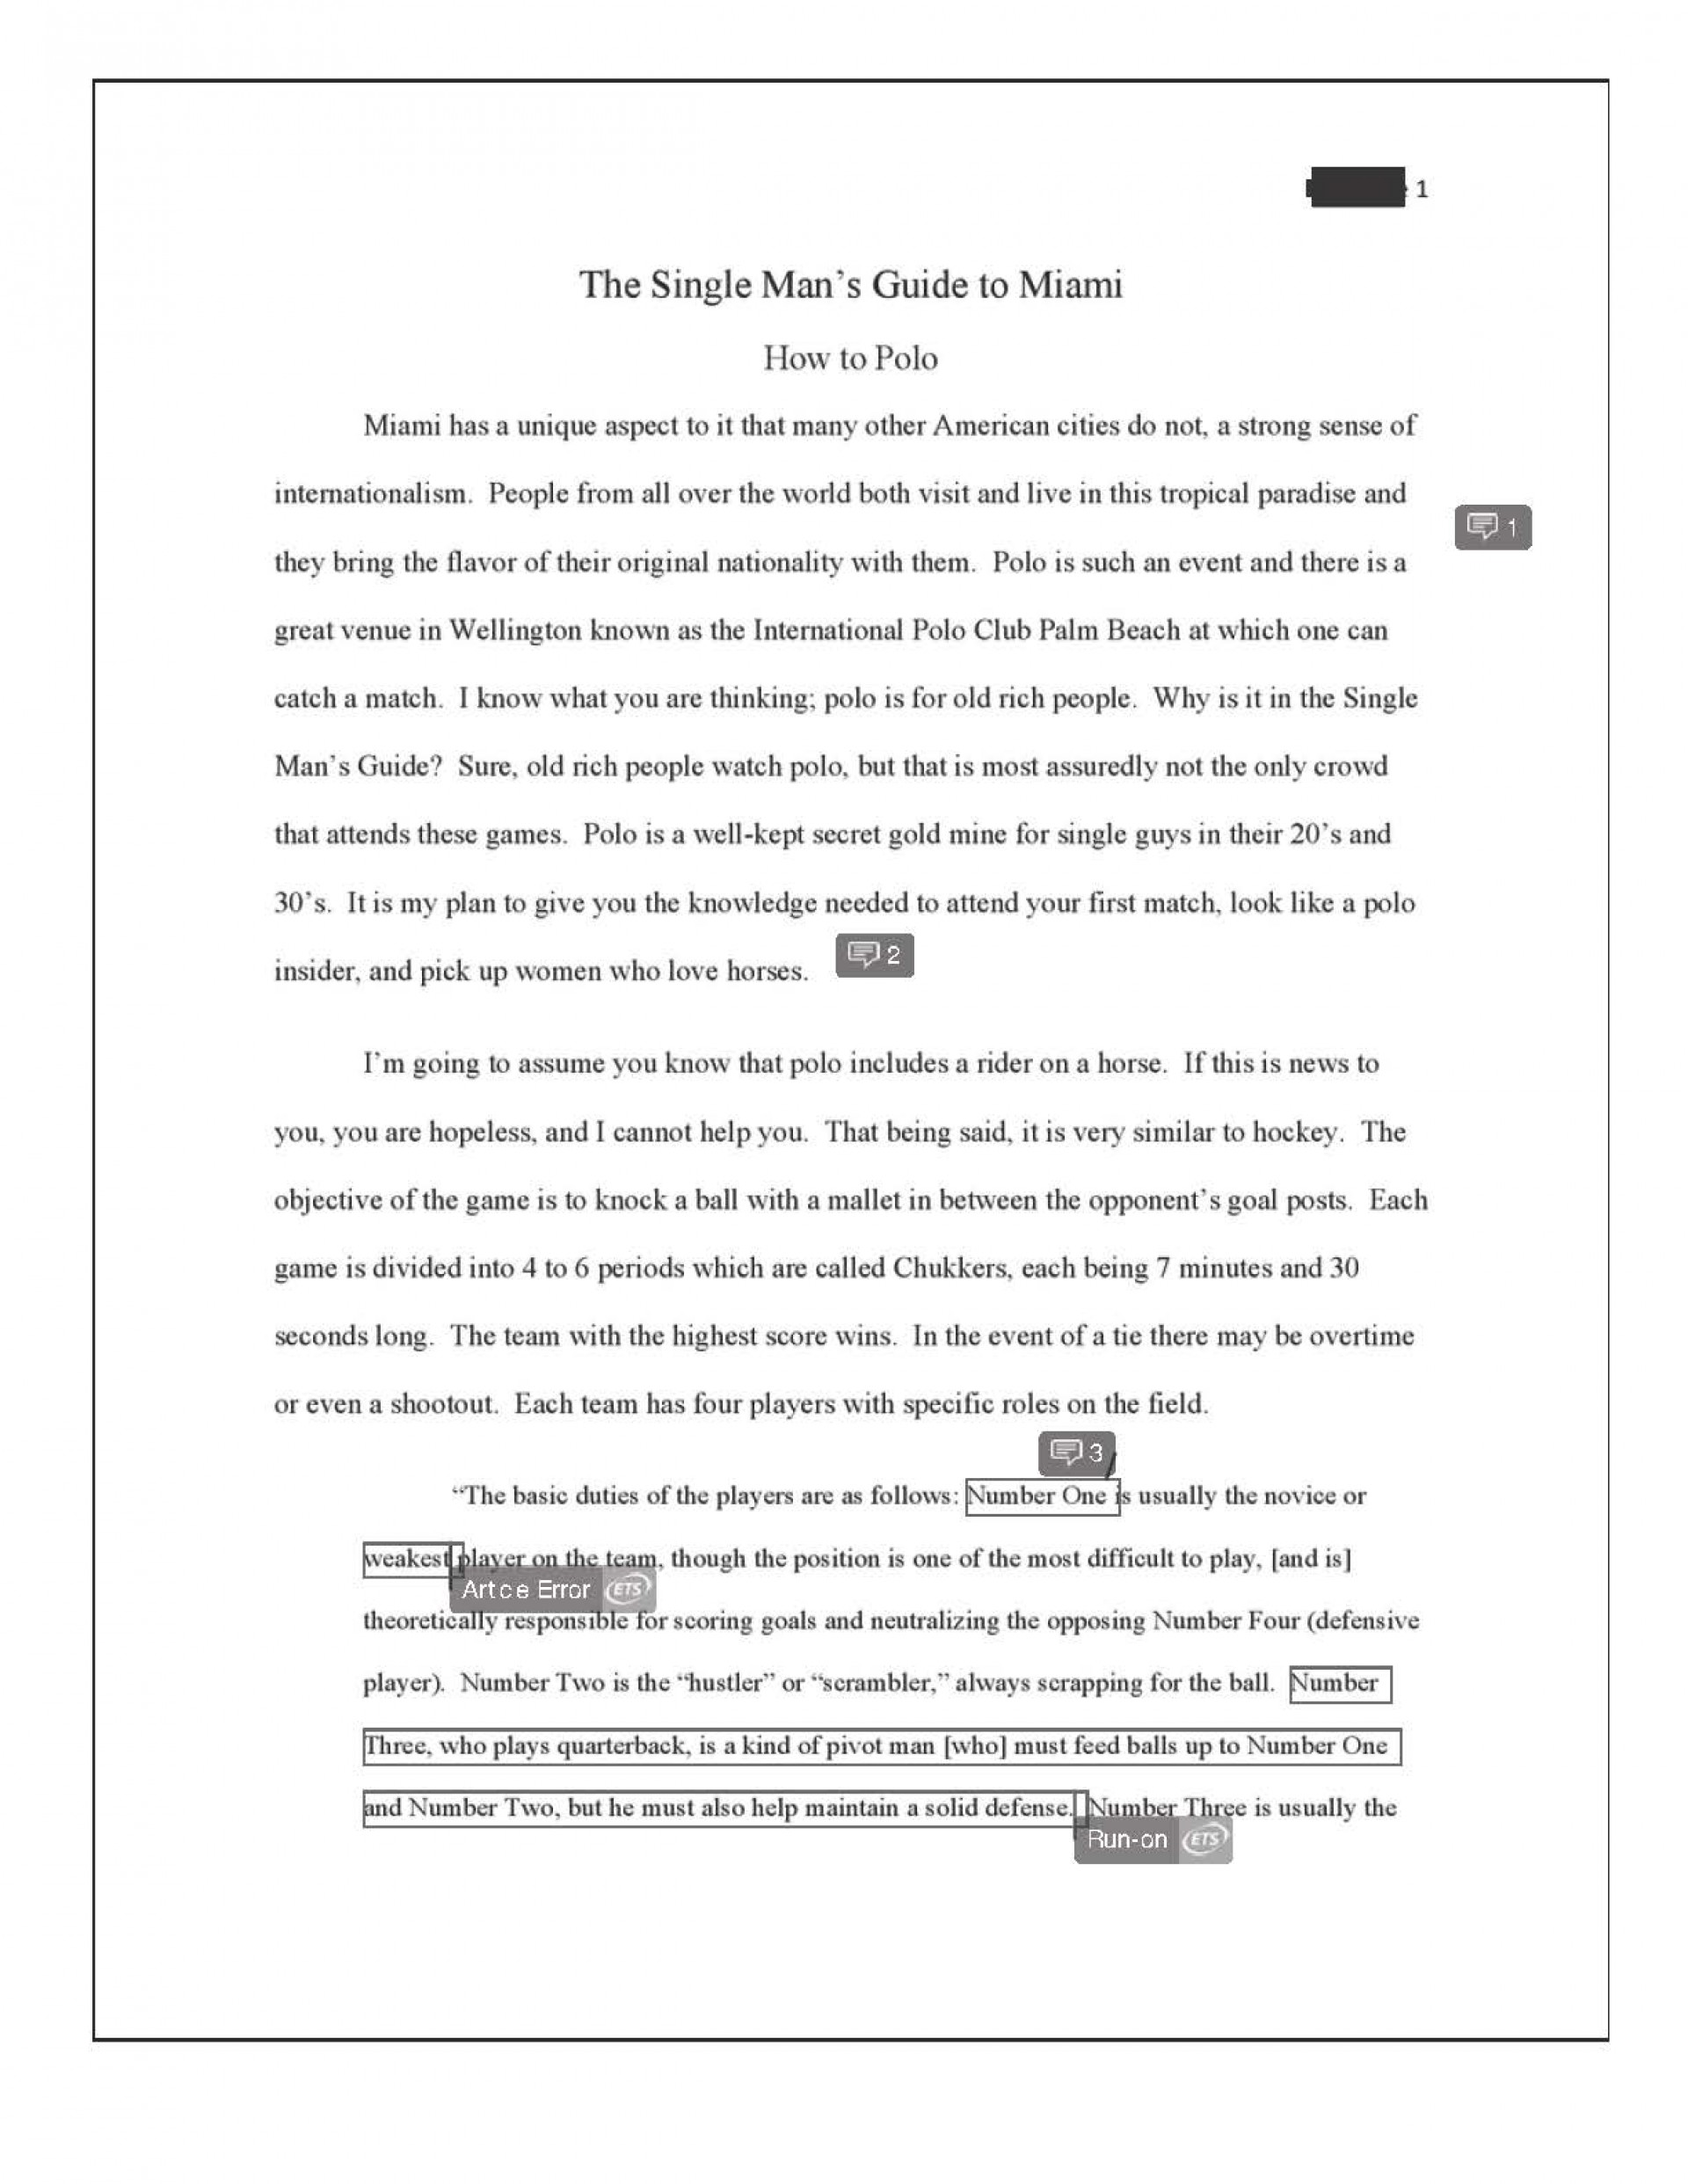 024 How To Write An Interview Essay Example Informative Final Polo Redacted Page 2 Excellent Paper In Apa Format Introduction 1920